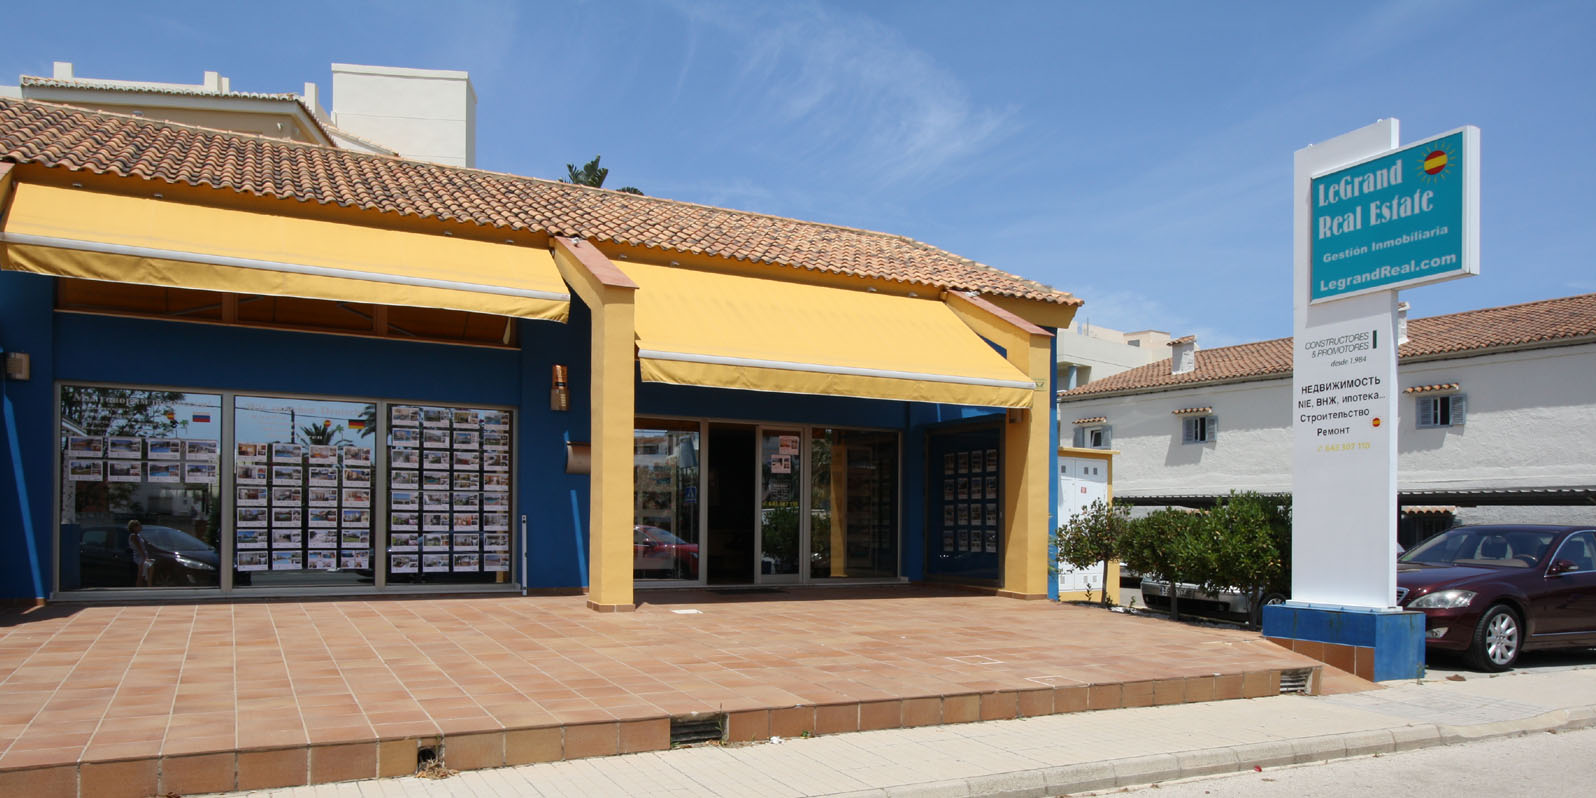 LeGrand Real Estate - immobilie in Spanien, Costa Blanca Denia